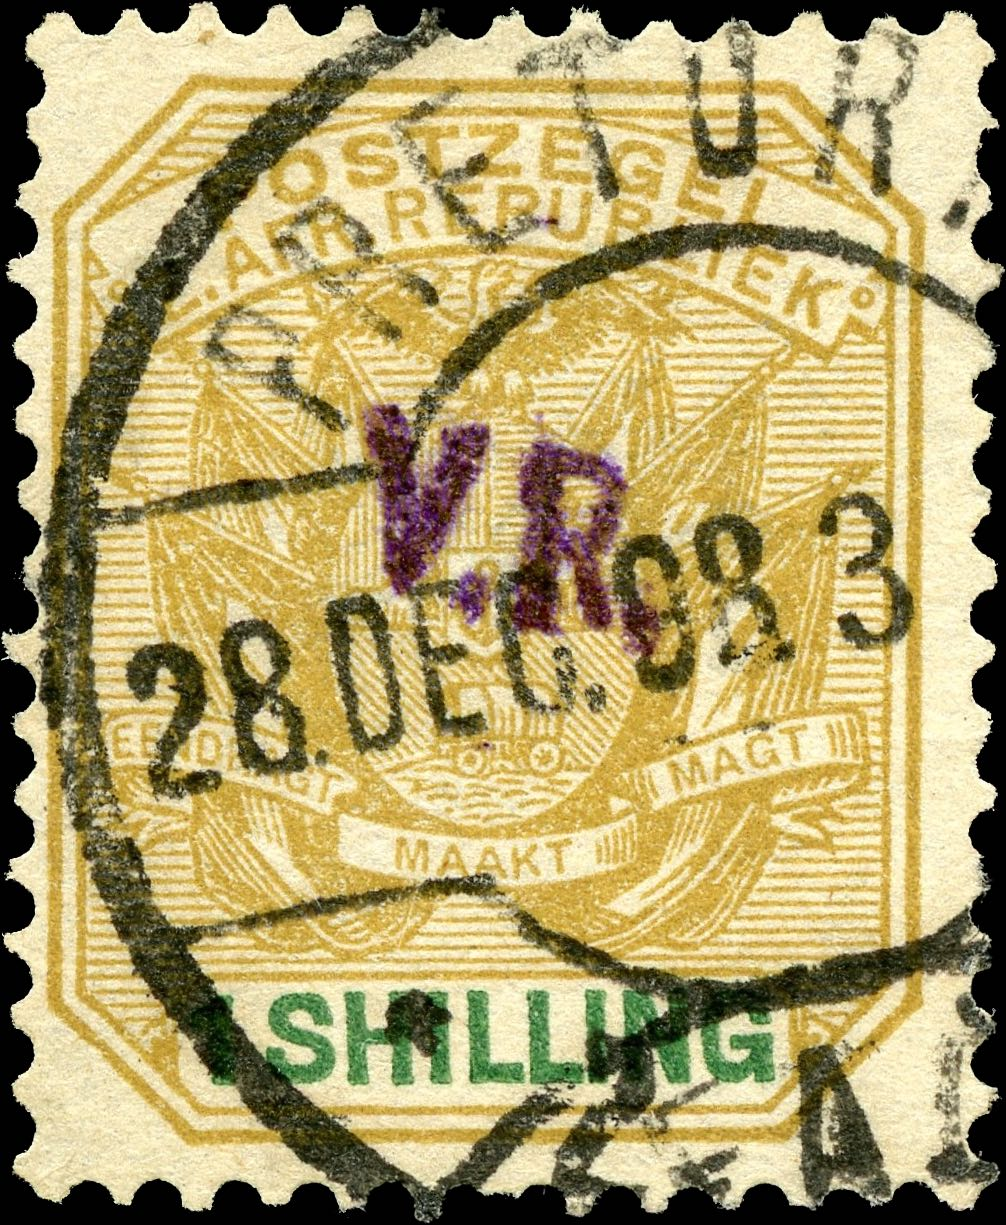 Transvaal_1s_Rusterburg_Forgery